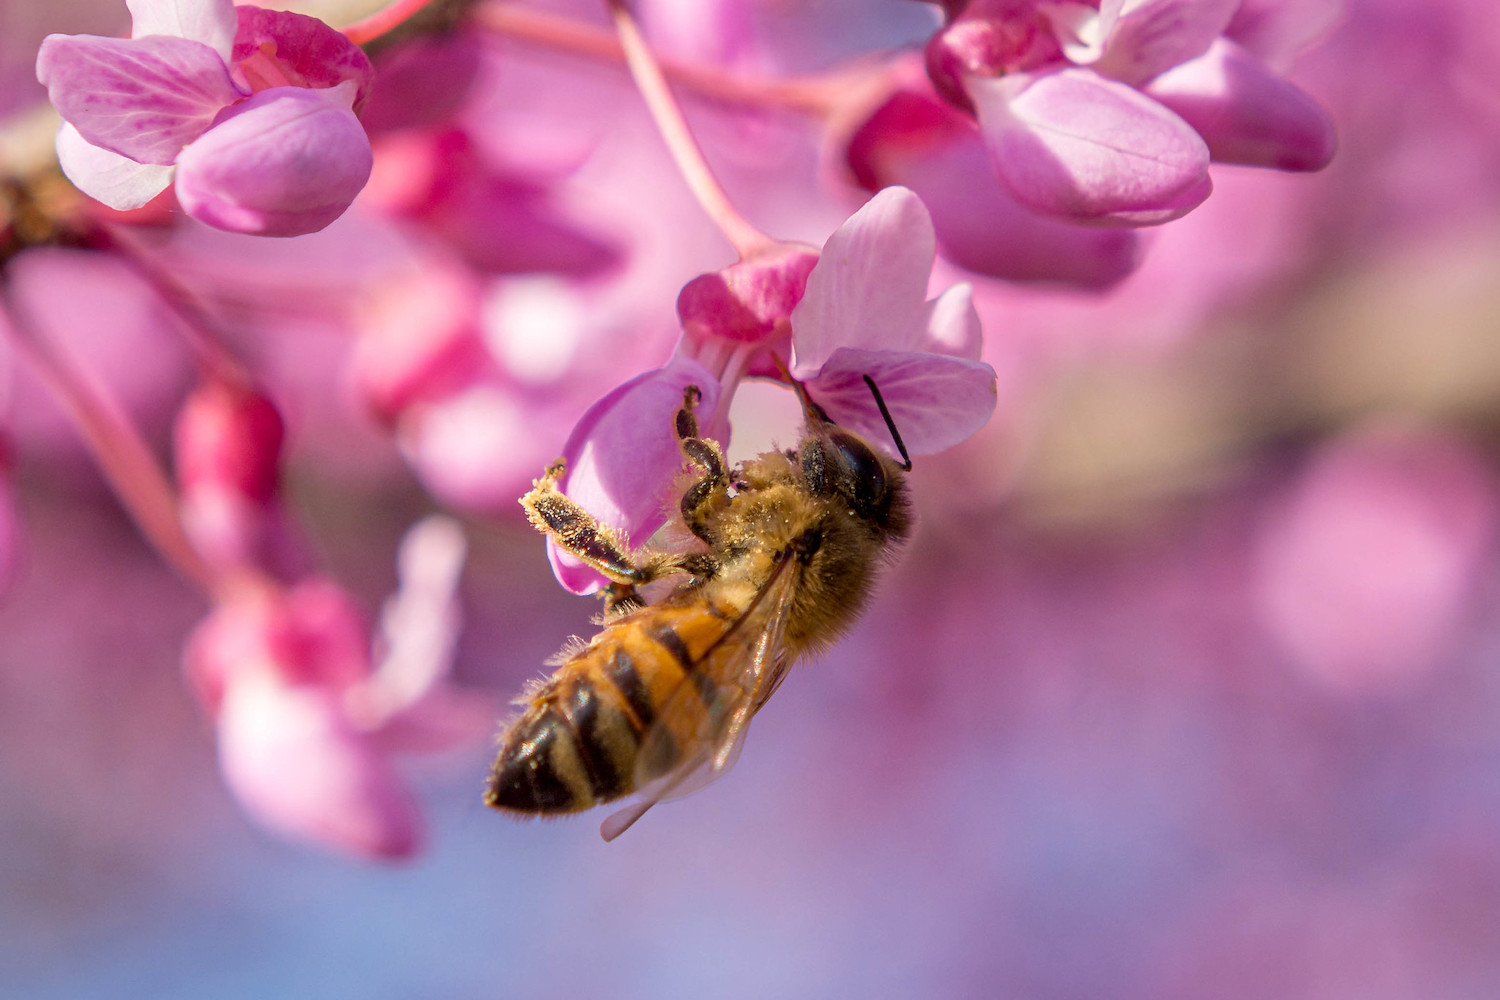 A bee pollinating a pink flower